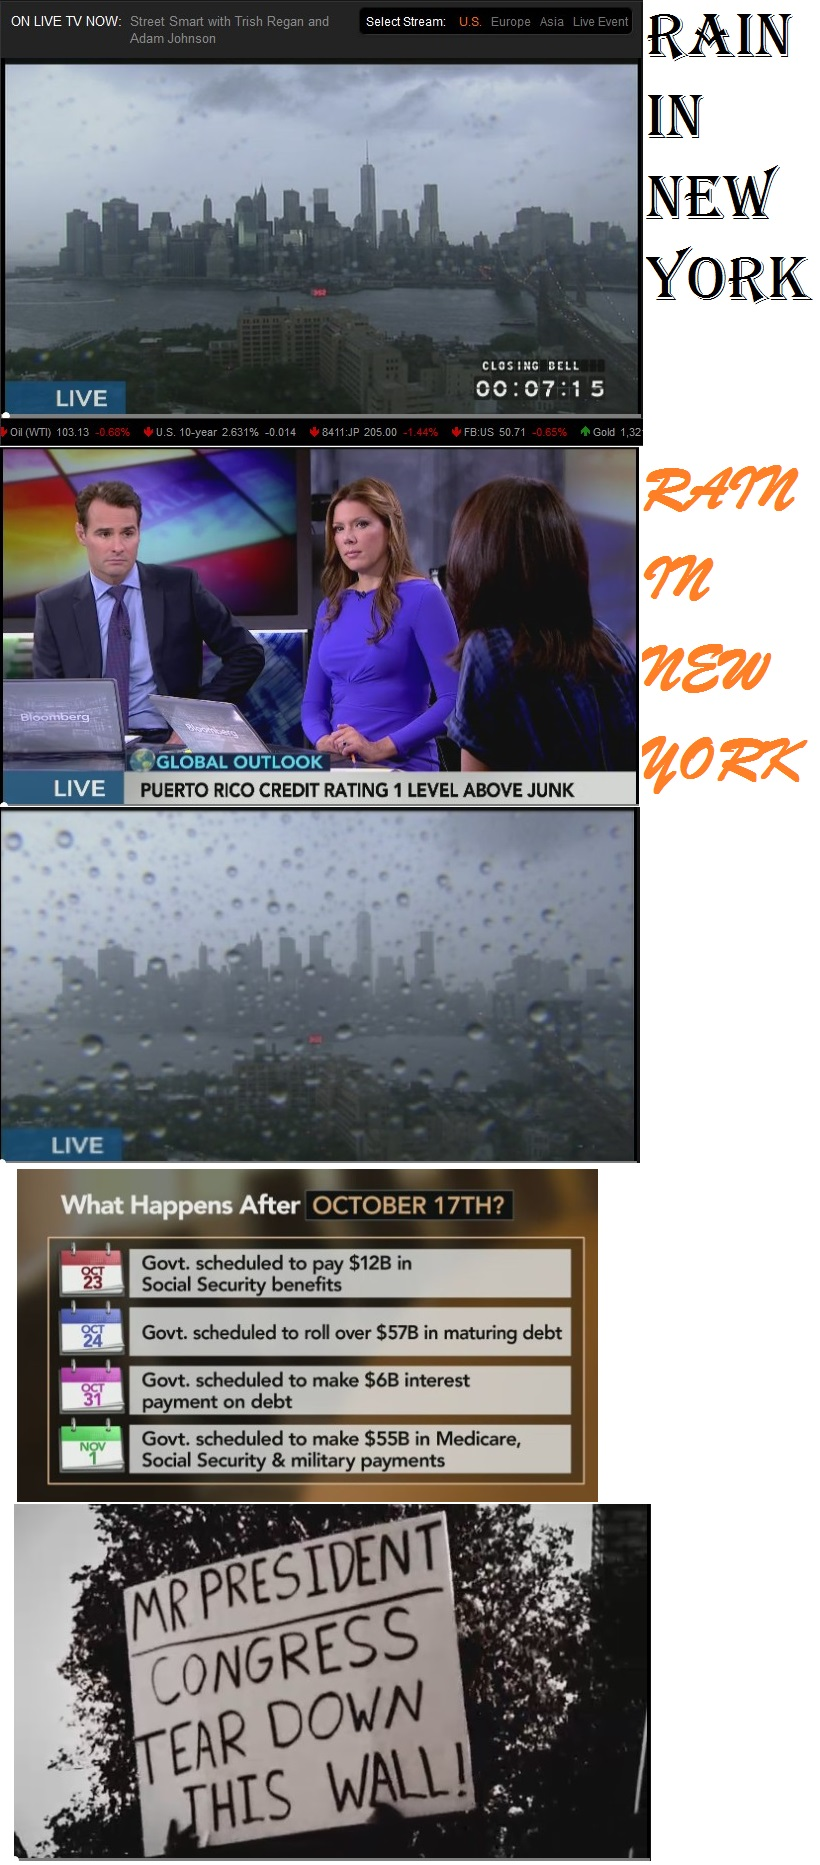 BLOOMBERG DEAFULT NEW YORK RAIN 01 081013